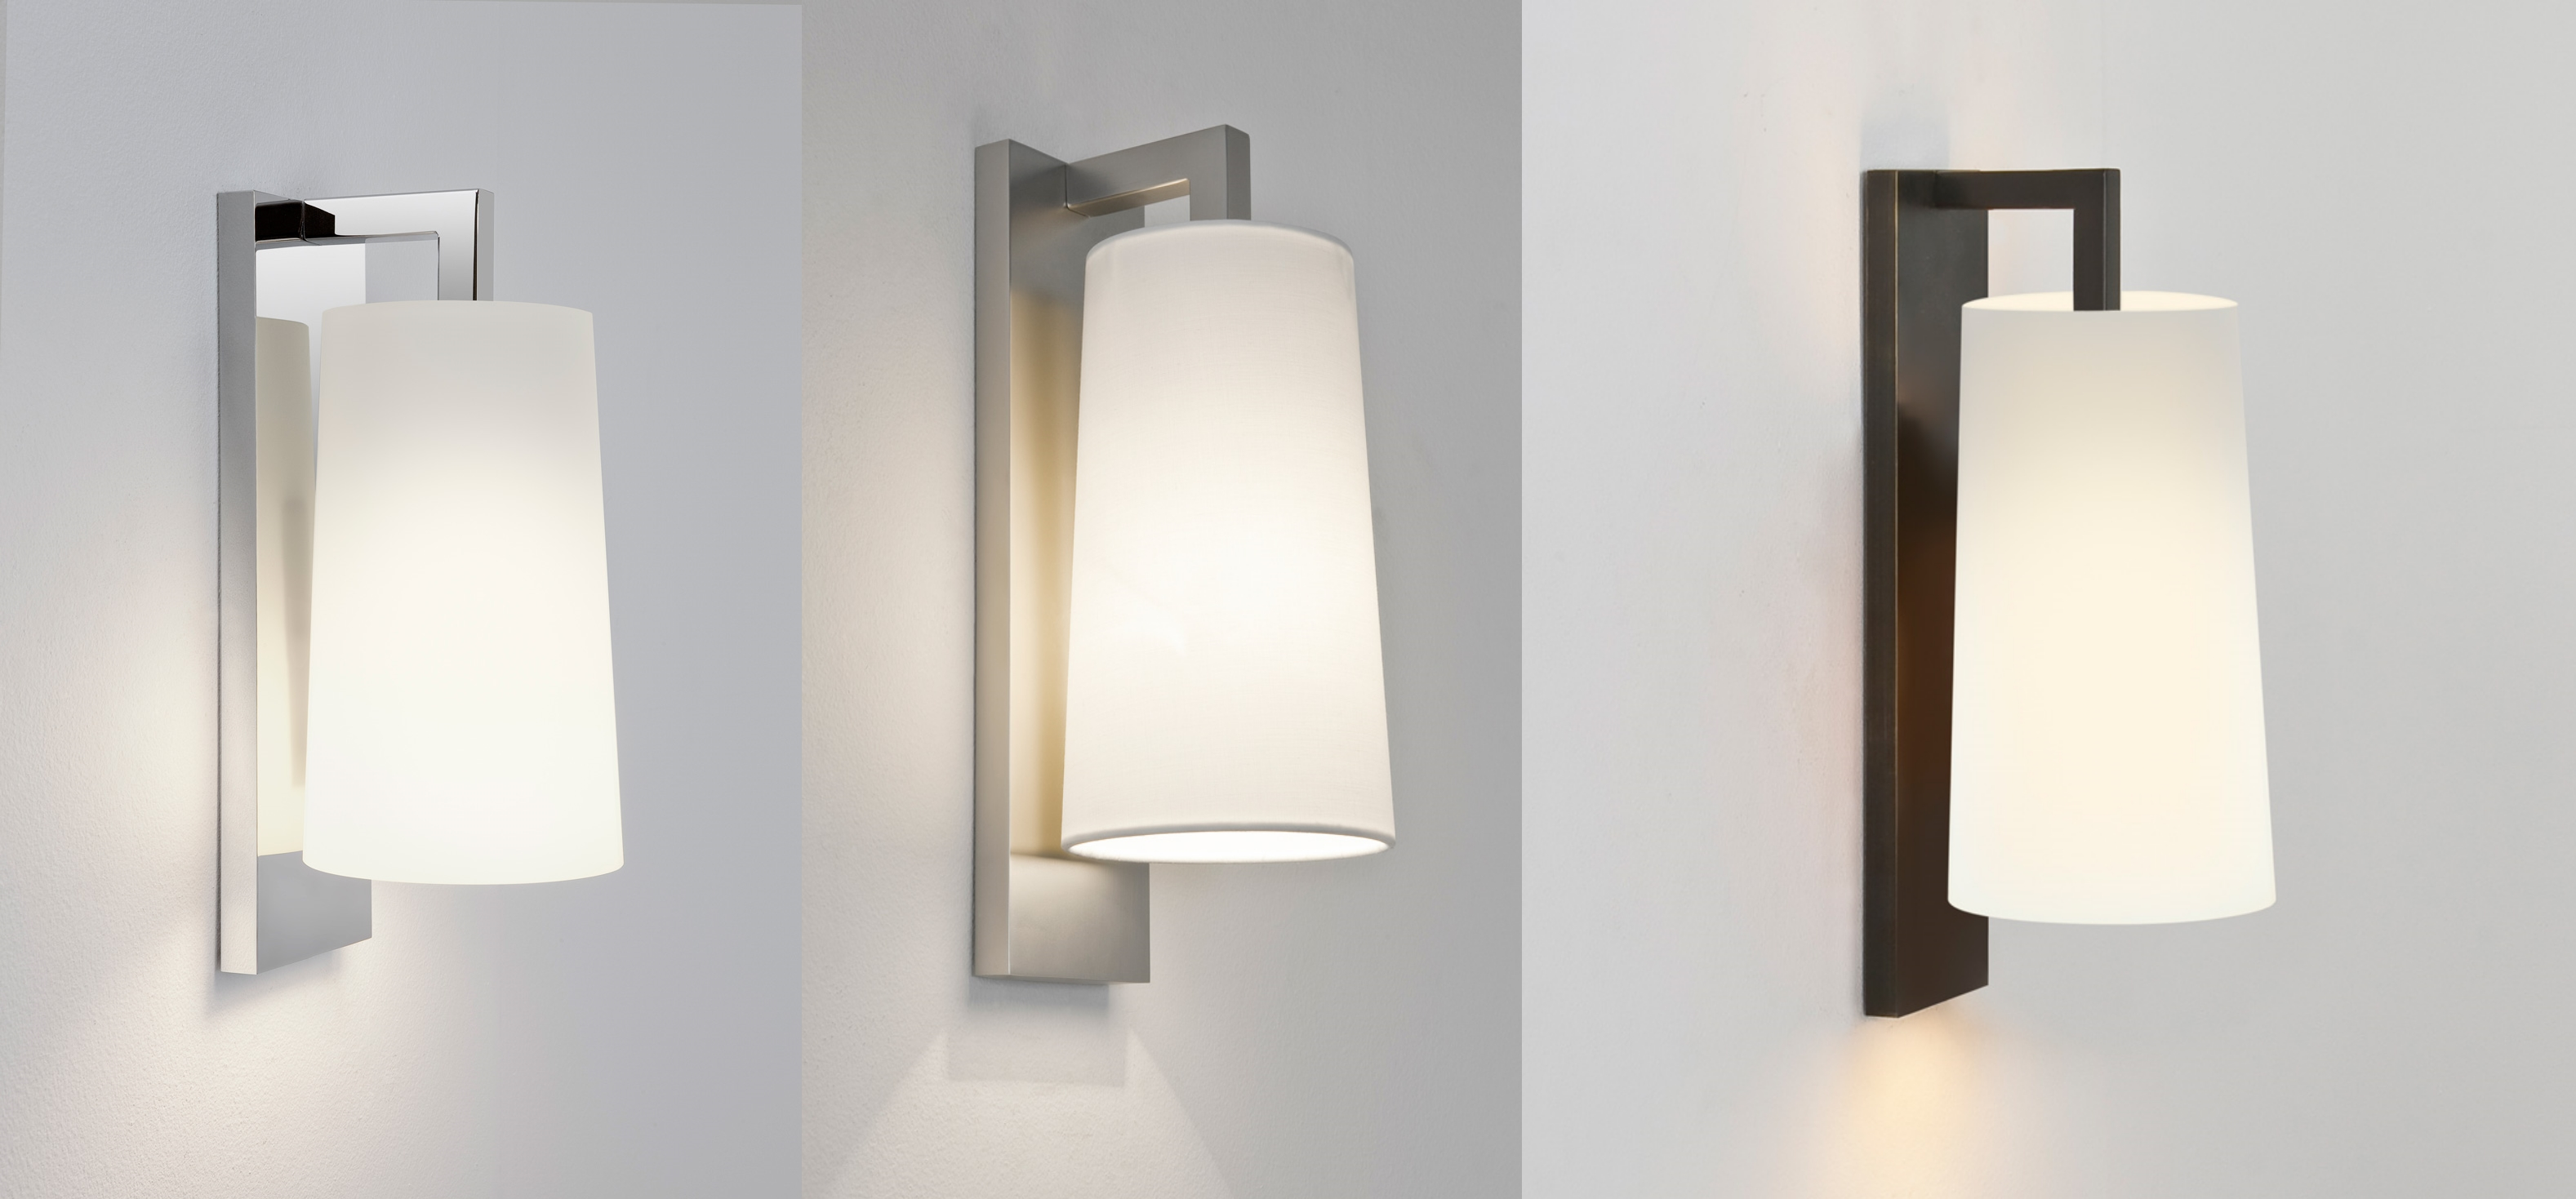 Wall Lights For Shower Room : Astro Lago 280 bathroom wall light 60W E27 chrome bronze nickel glass fabric eBay